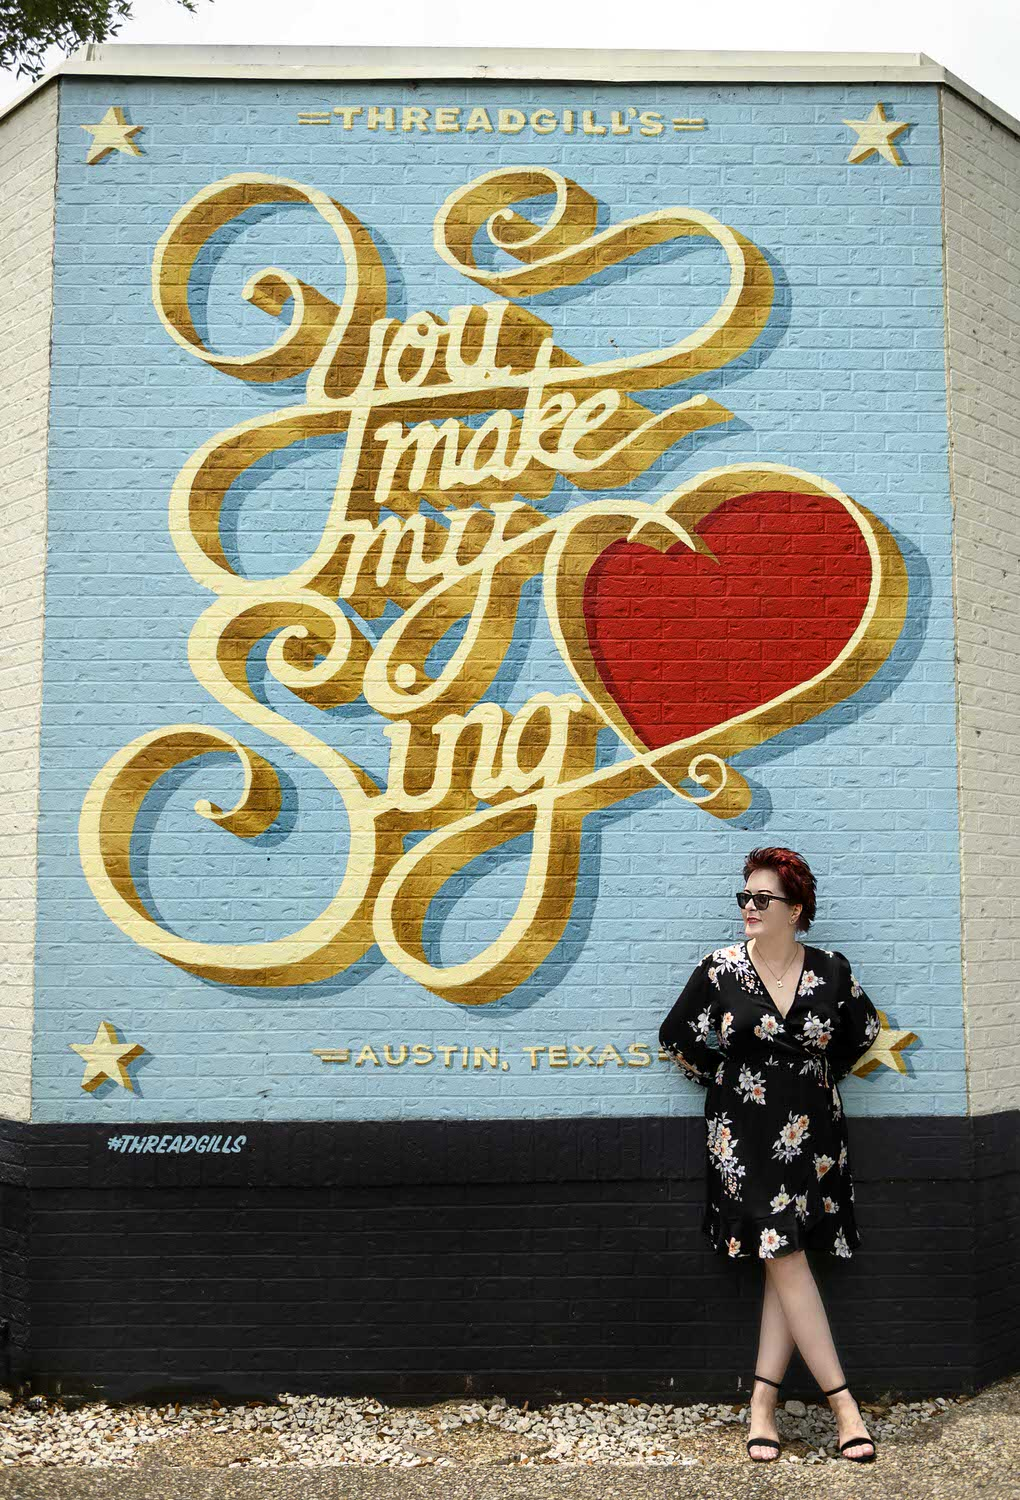 red-haired-woman-in-black-dress-leaning-against-wall-mural-you-make-my-heart-sing-austin-texas